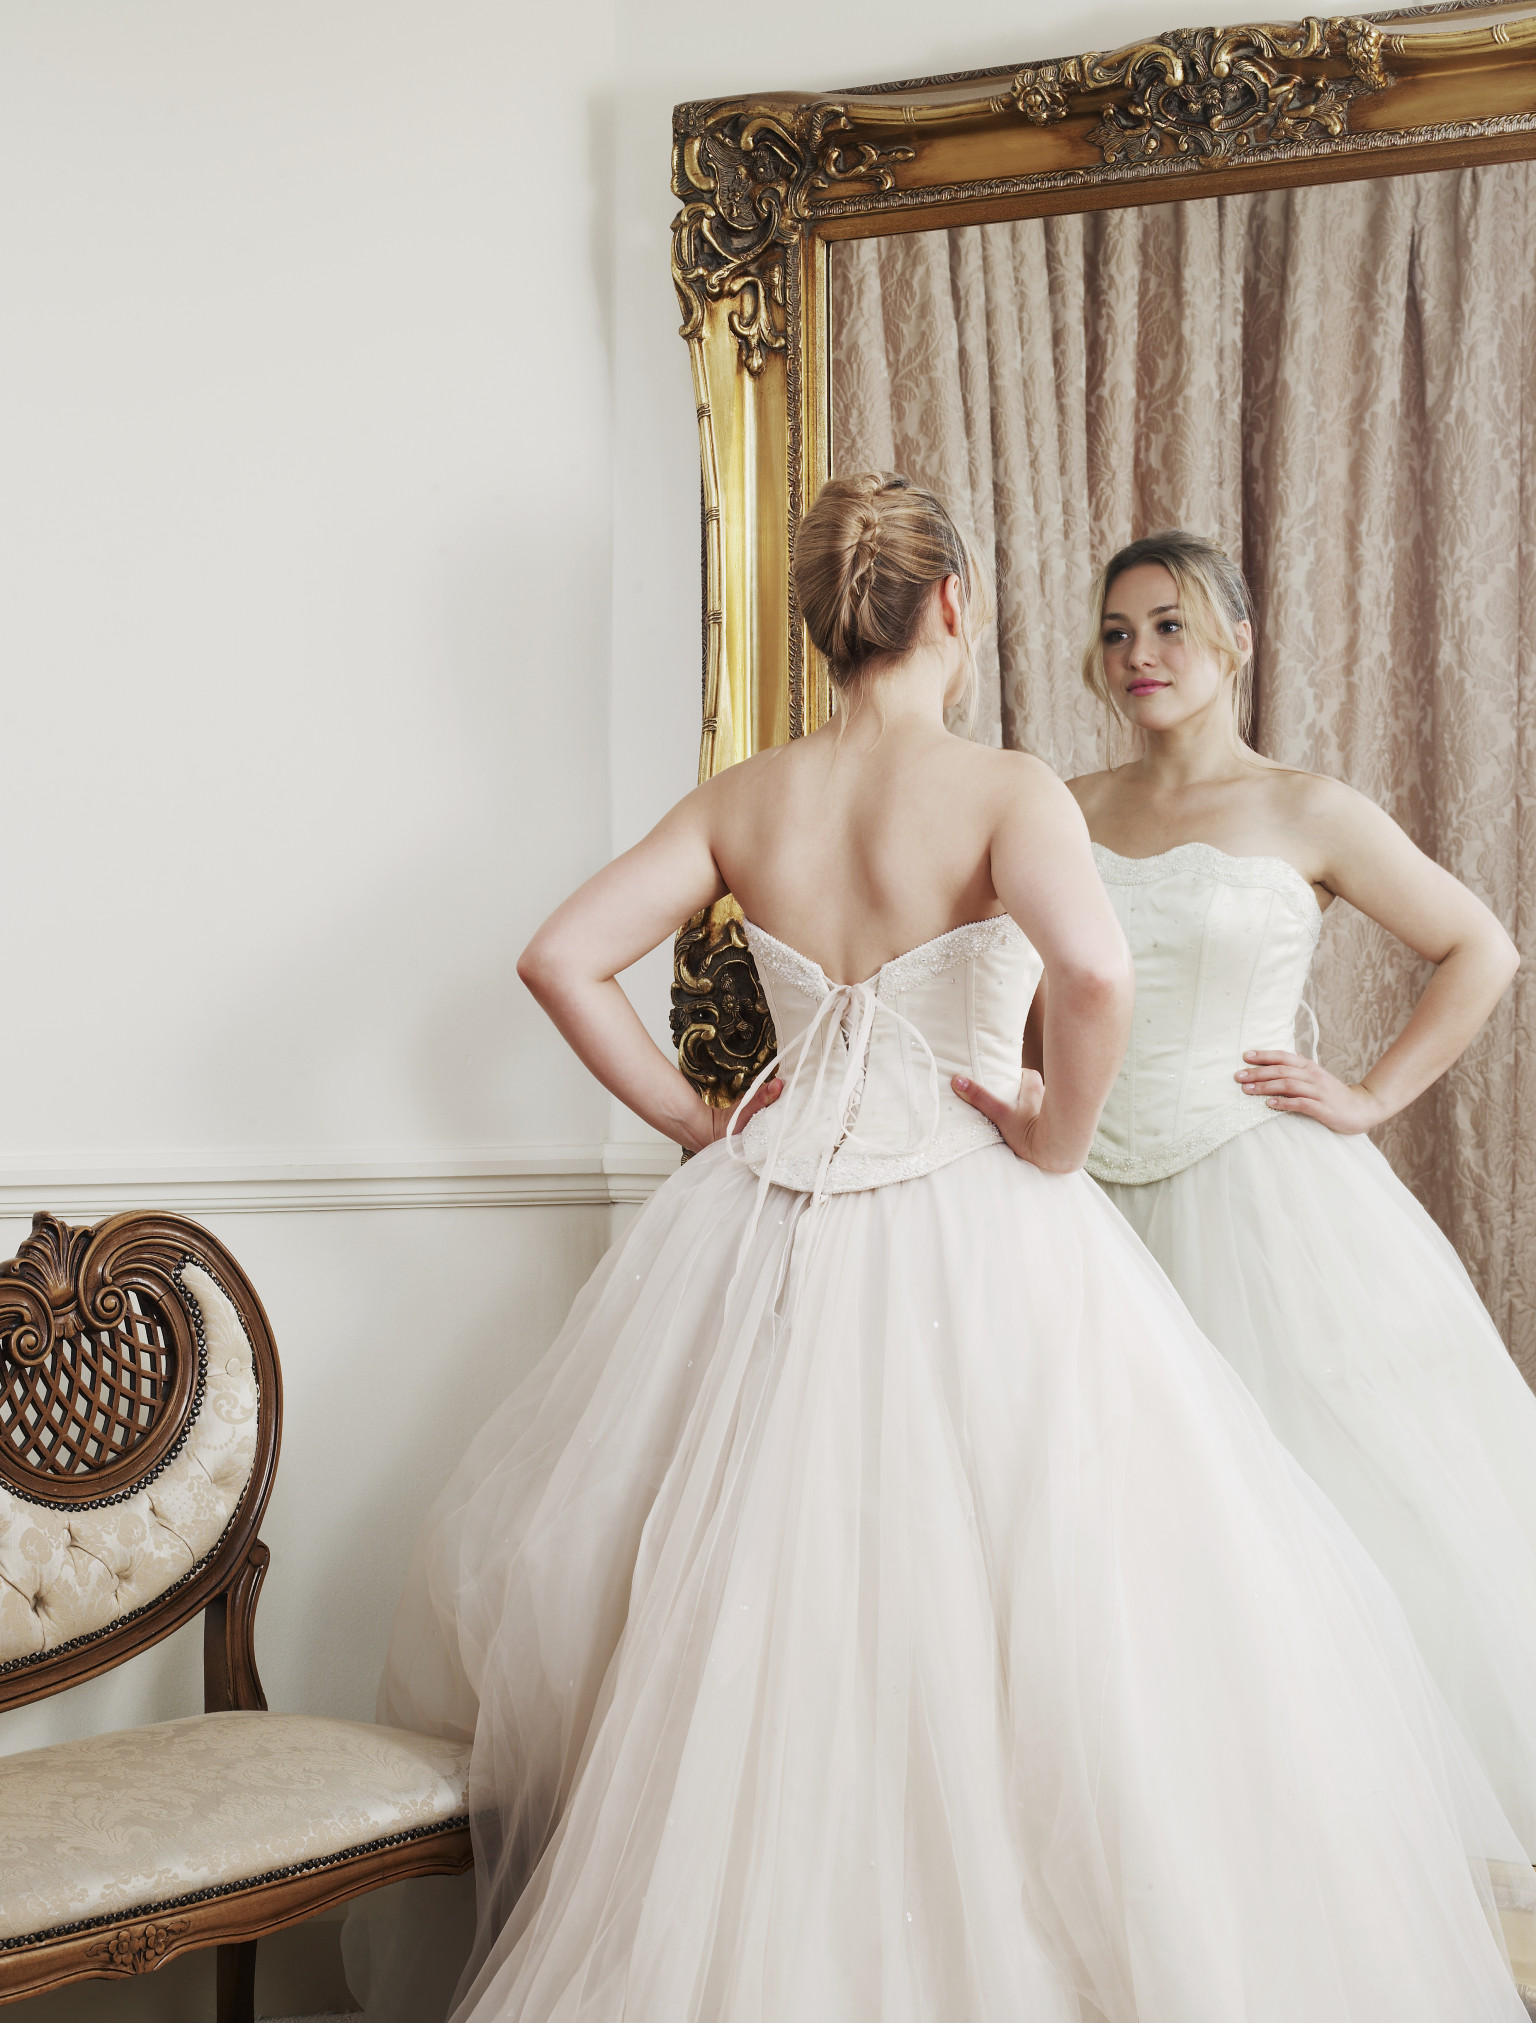 Calmly Sell Your Wedding Survey Reveals Why Women Sell Gowns Huffpost Sell Your Wedding Survey Reveals Why Women Sell Used Bridesmaid Dresses Vancouver Used Bridesmaid Dresses Alfred Angelo wedding dress Used Bridesmaid Dresses